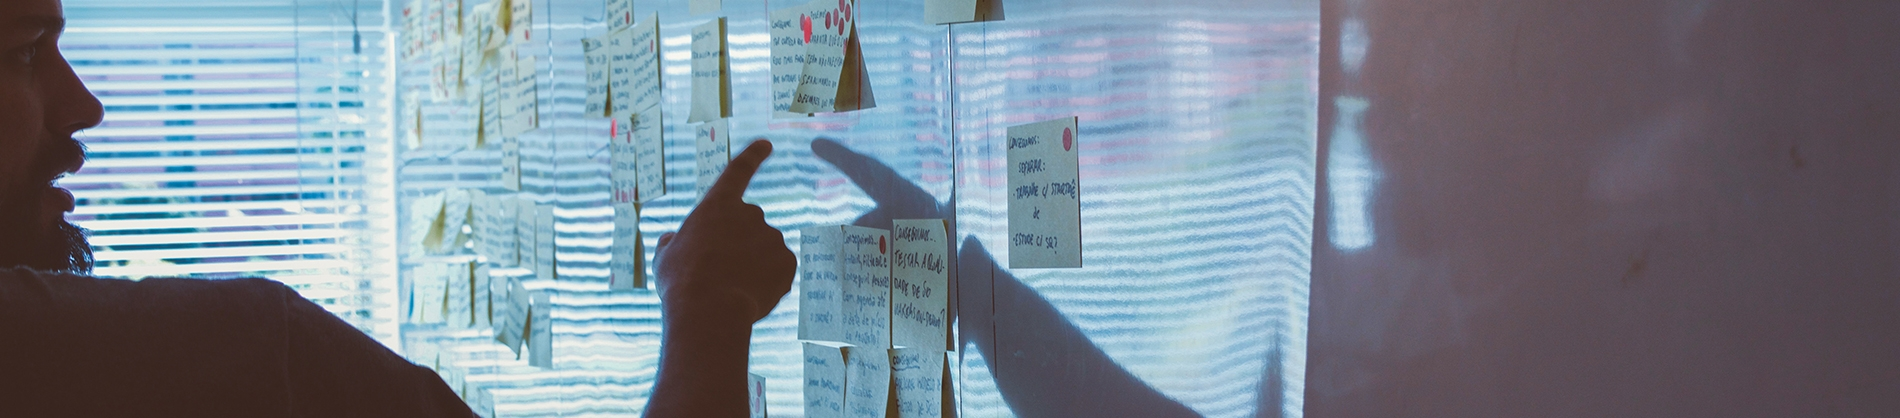 A man pointing at post-it notes on a whiteboard